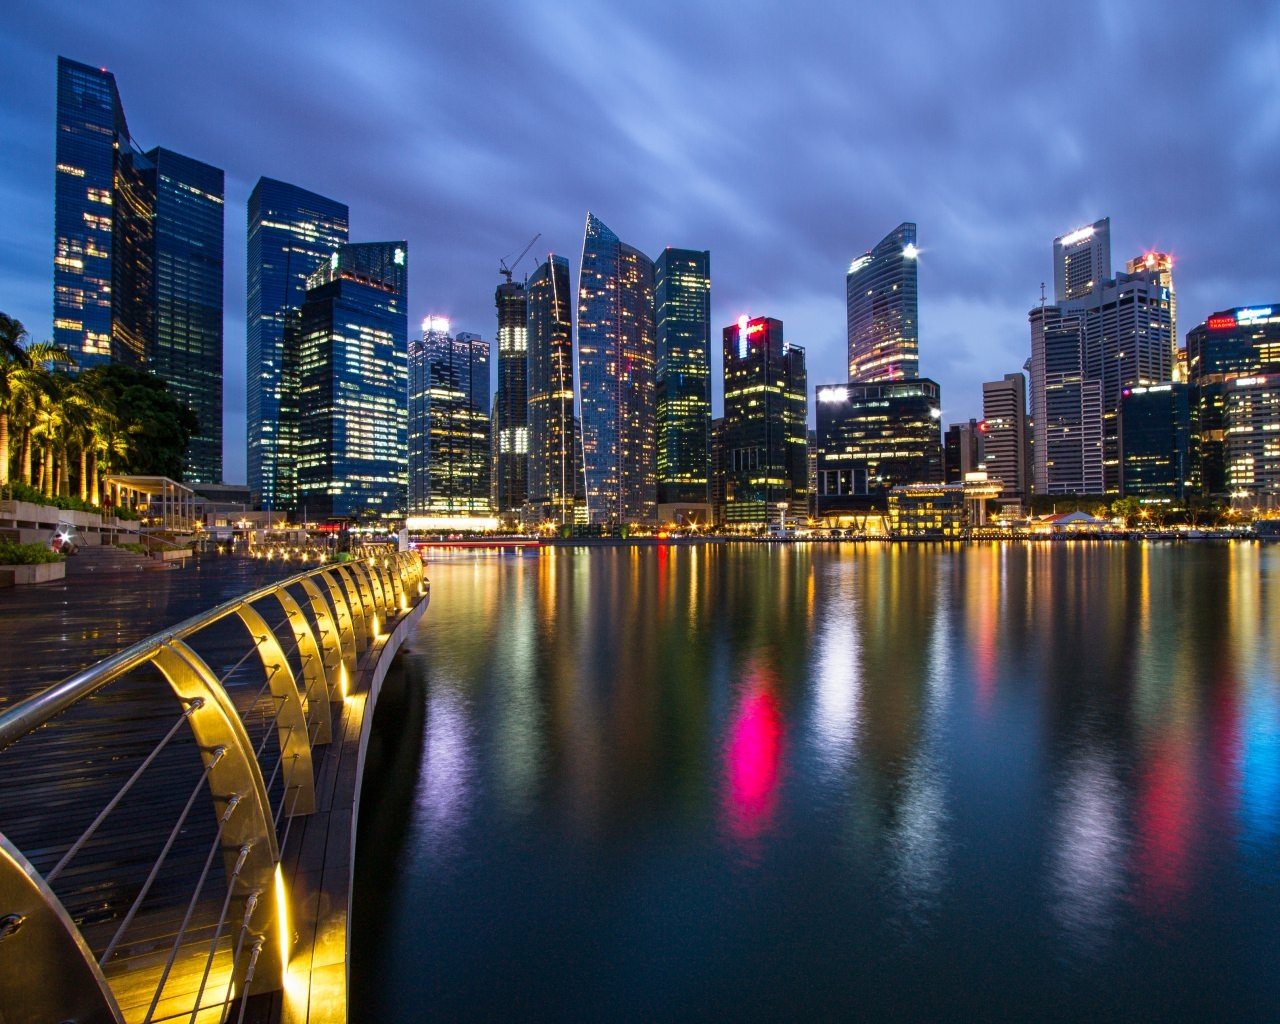 Singapore City Metropolis Skyscrapers Night Lights Wallpaper